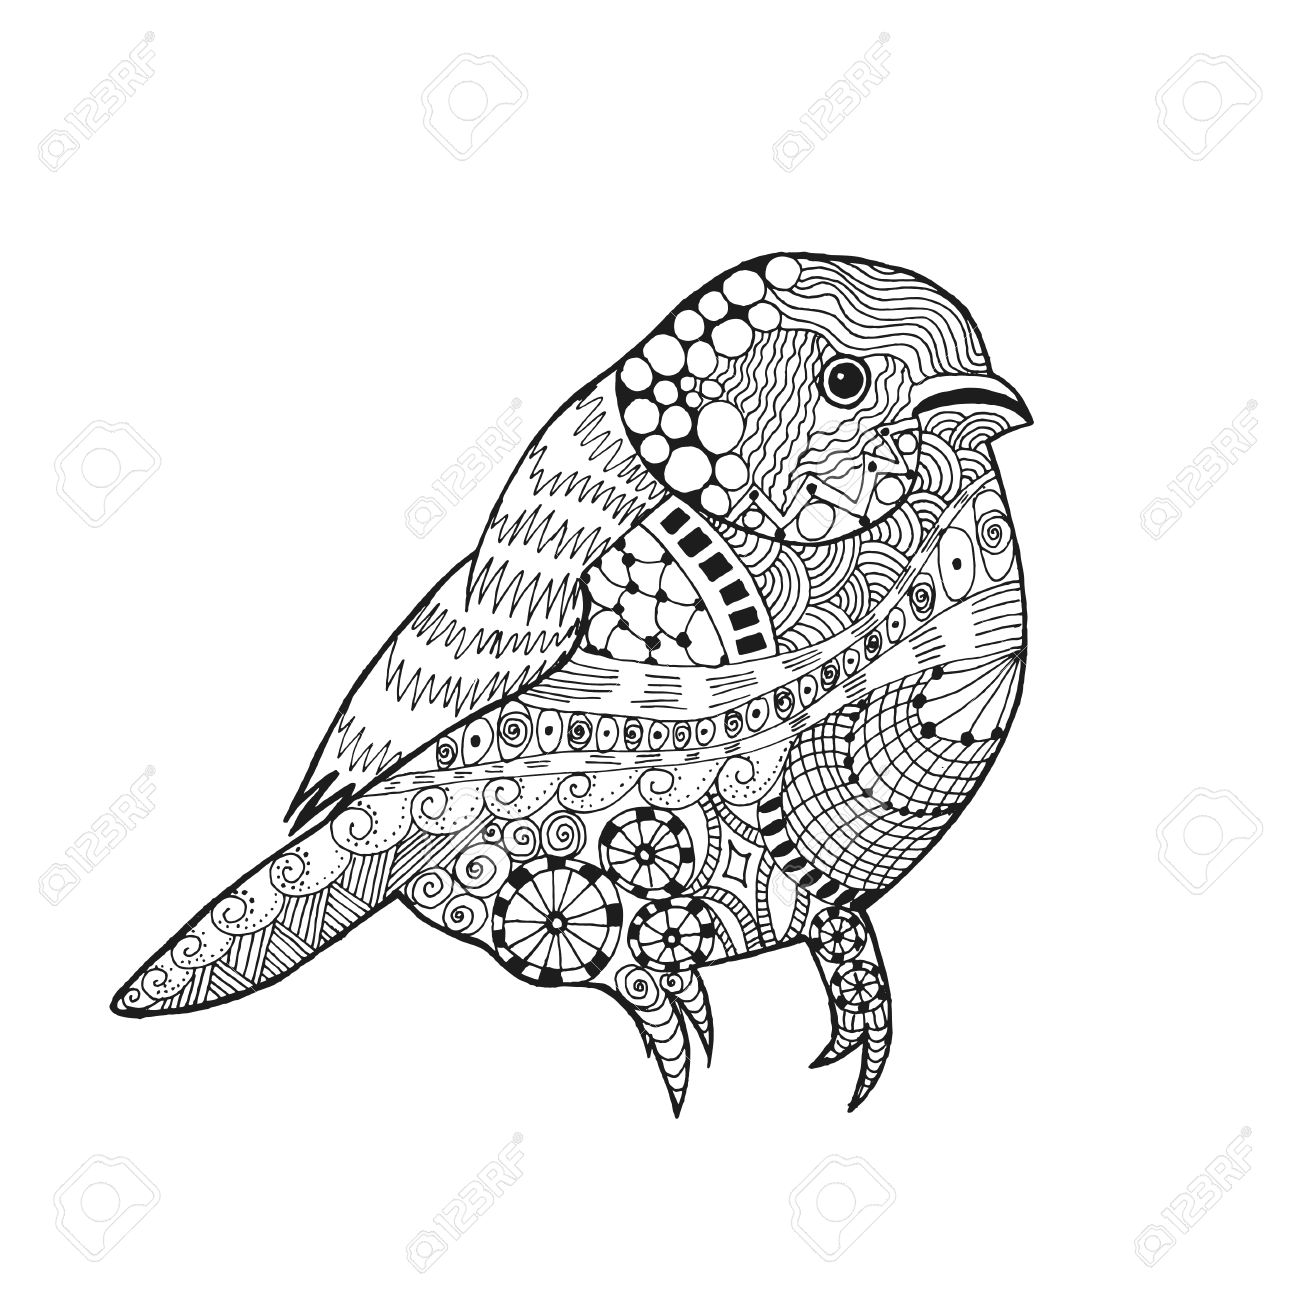 1300x1300 Zentangle Stylized Bird. Animals. Black White Hand Drawn Doodle